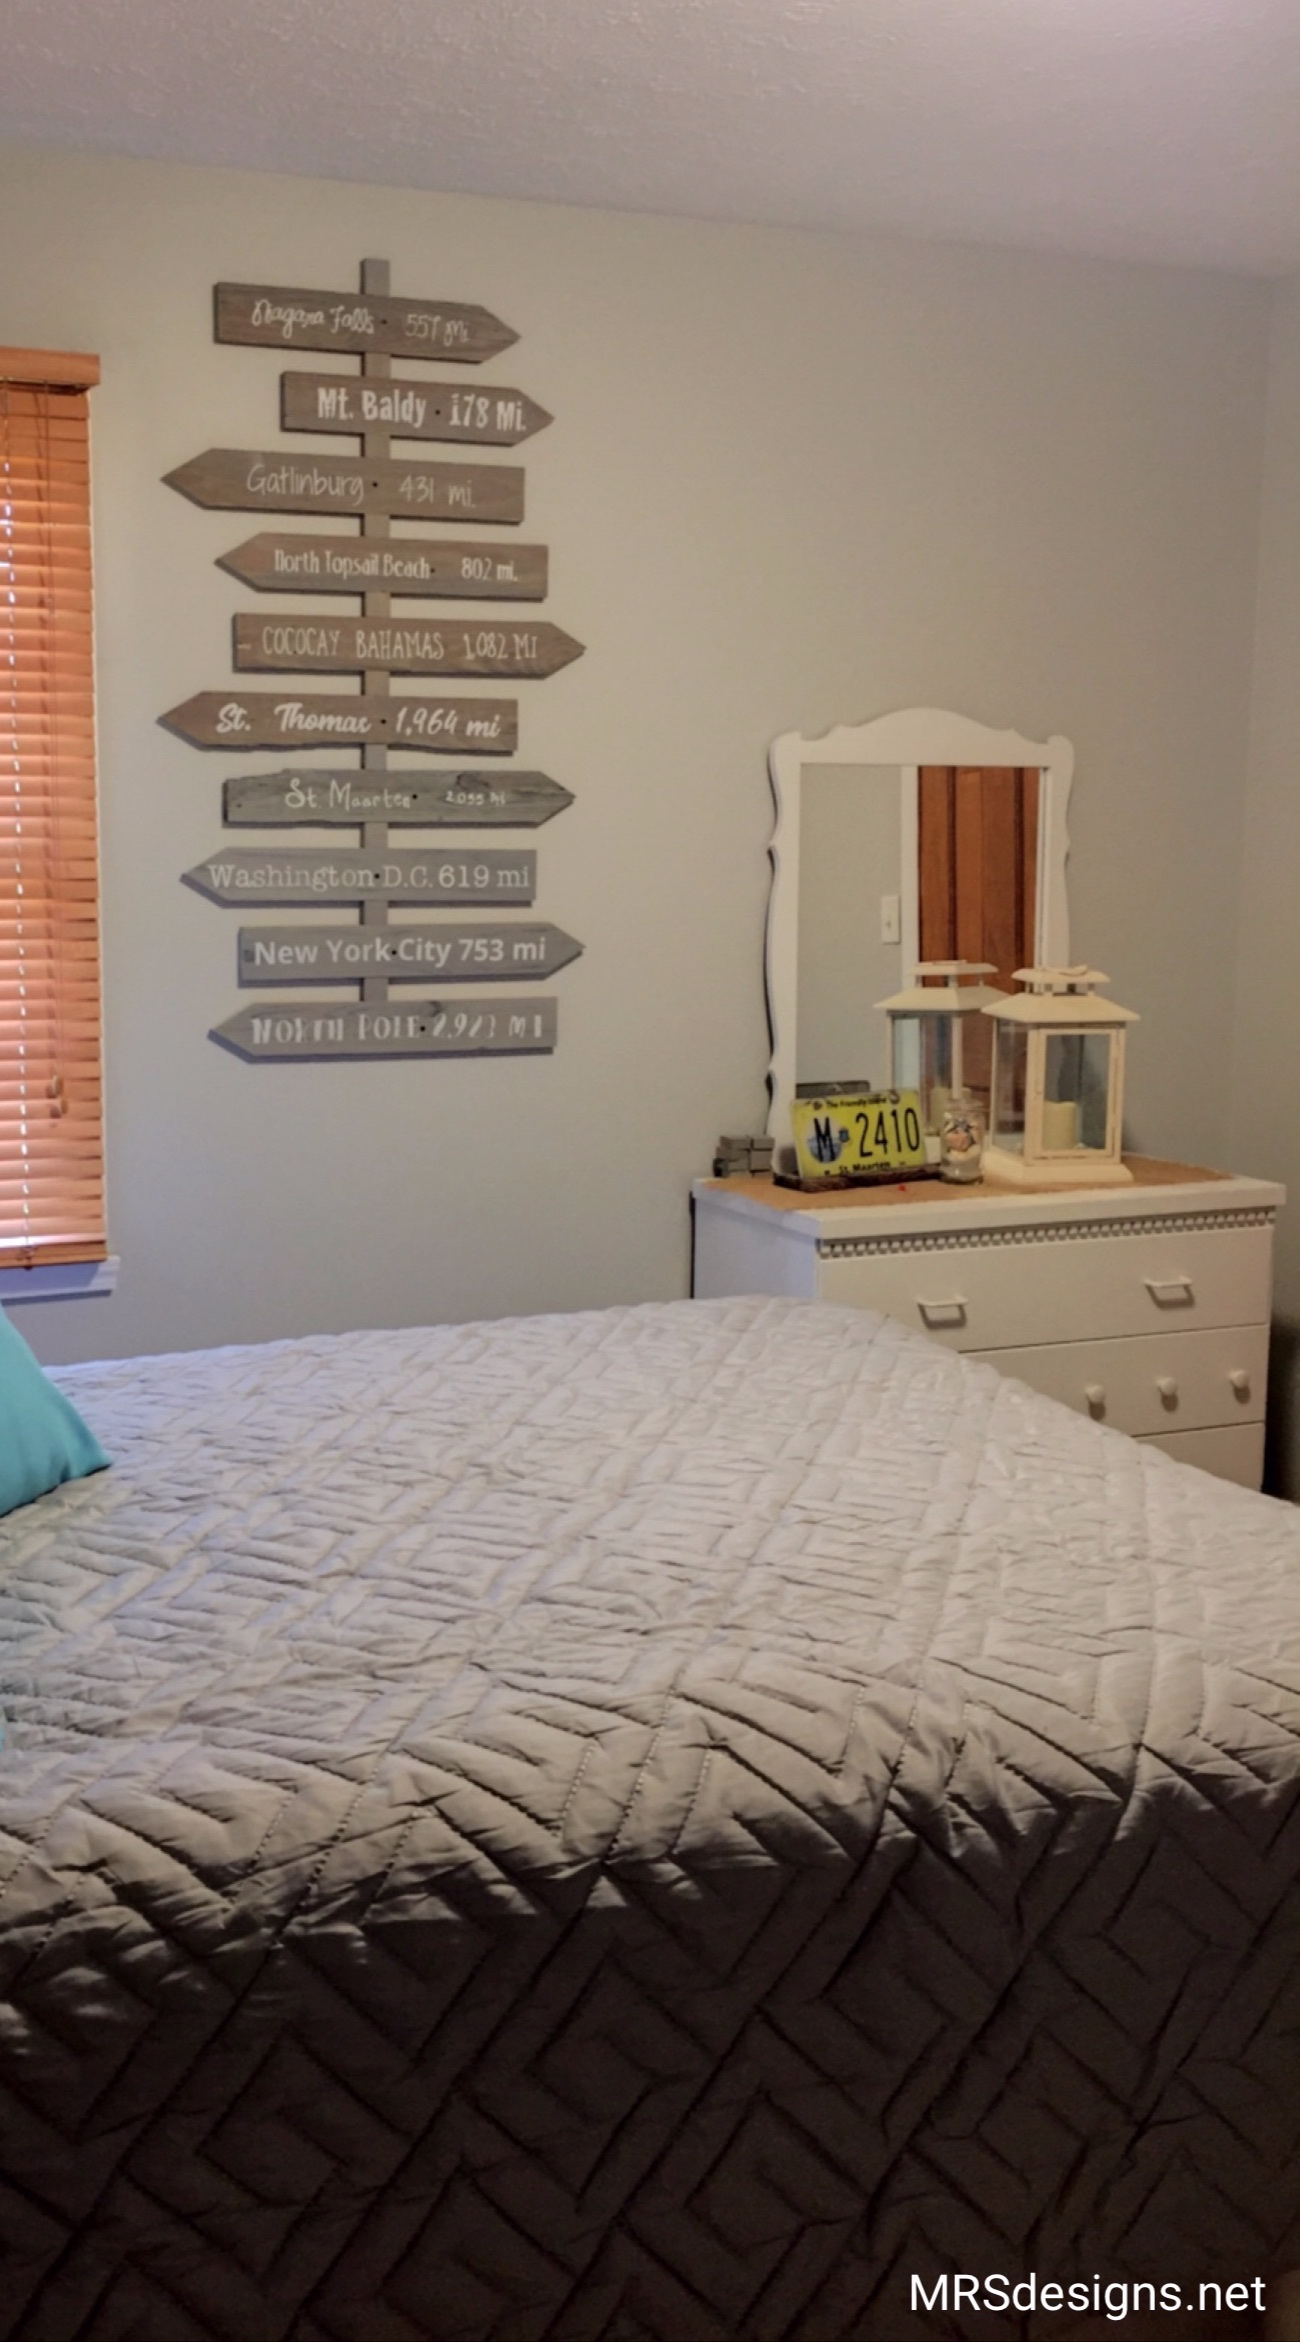 How+to+create+directional+signs+DIY+%7C+Travel+%7C+Paint+Signs+%7C+Vacation+Memories+%7C+Home+Decor+%7C+MRSdesigns.net+.jpg